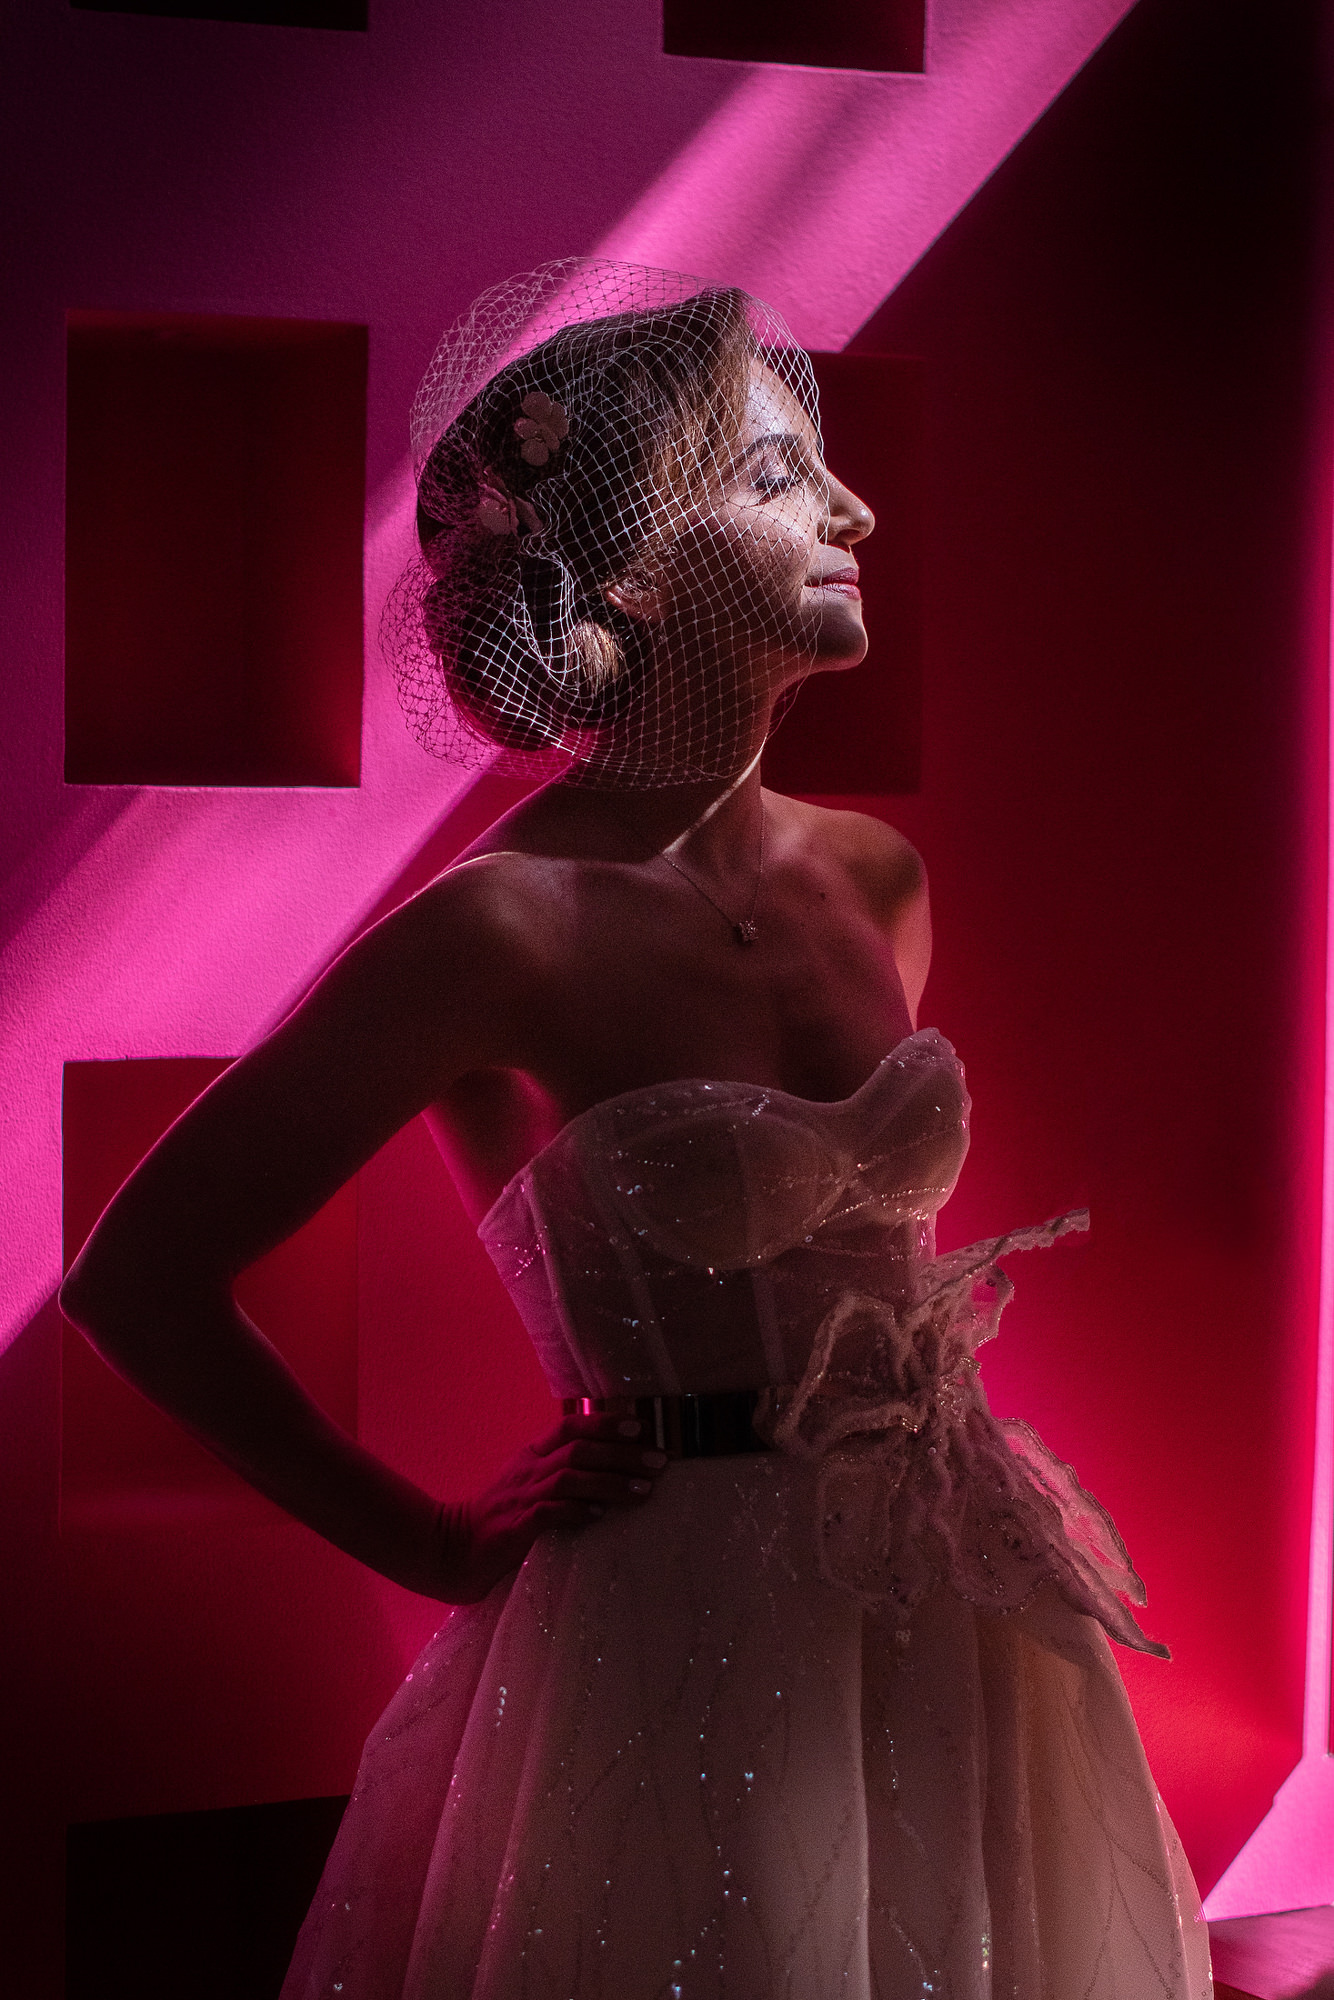 Bride in bright pink light with bird-cage veil and strapless beaded gown - Daniel Aguilar Photographer